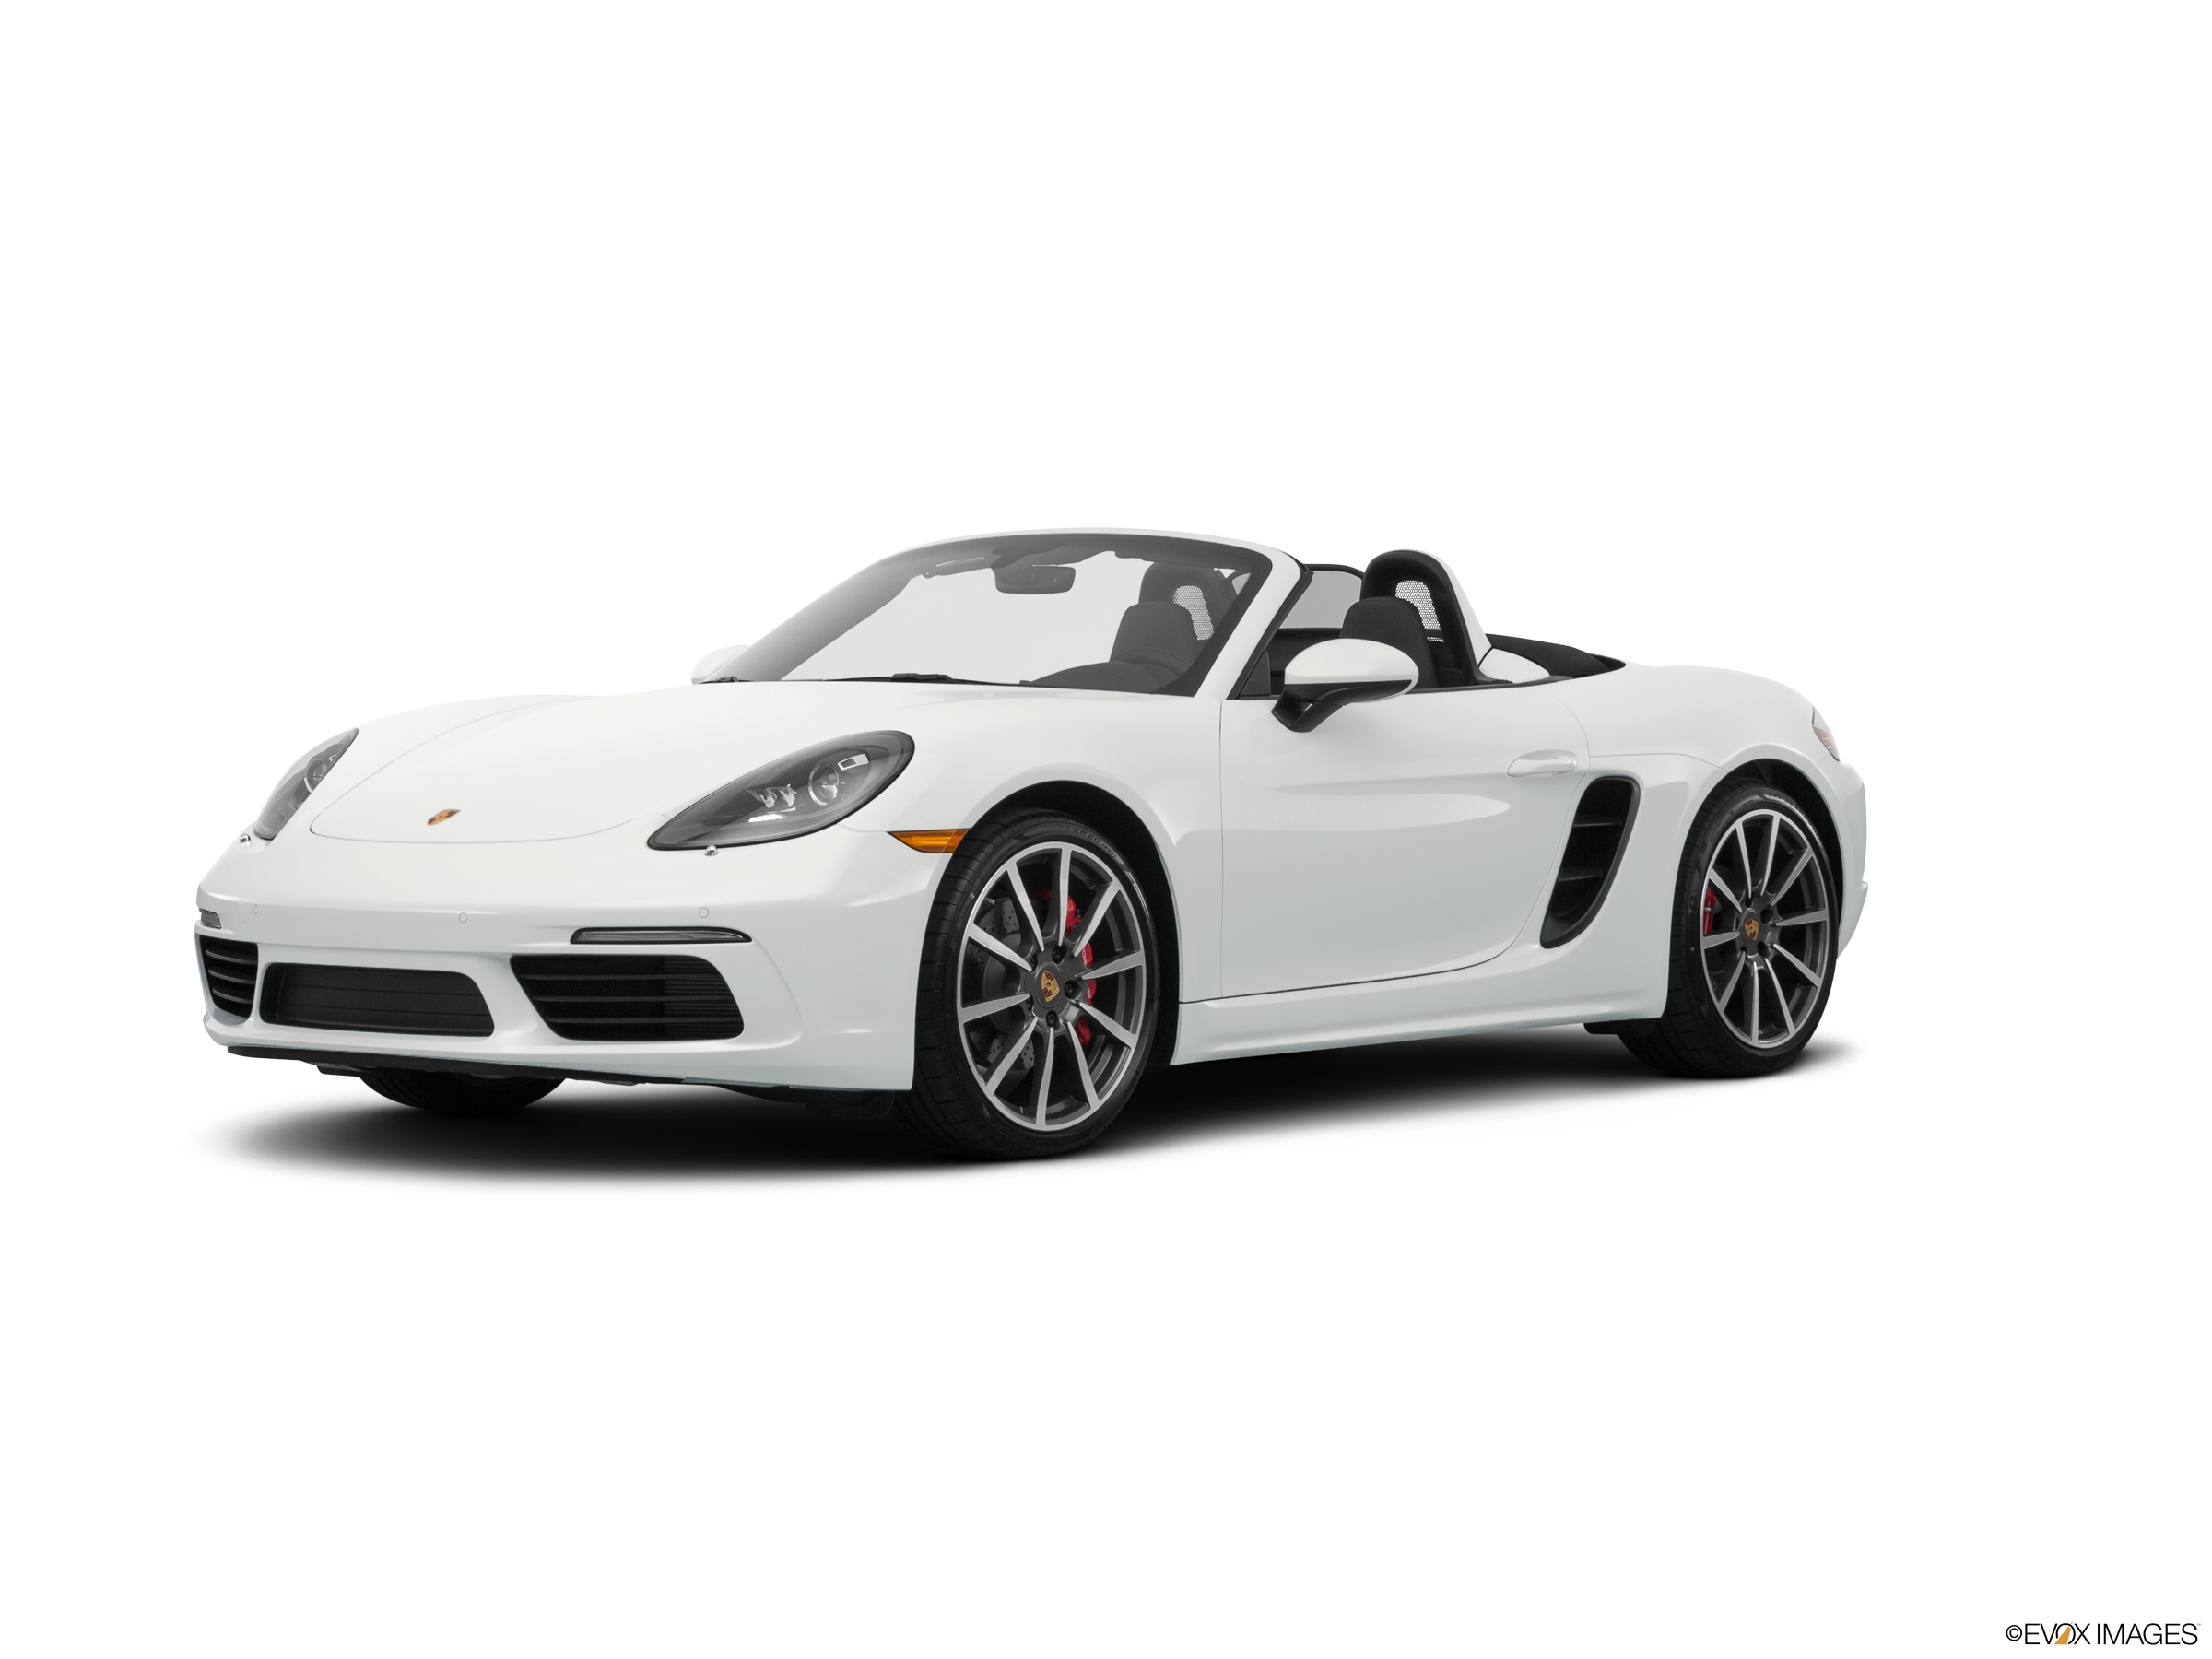 Most Popular Convertibles of 2019 - 2019 Porsche 718 Boxster